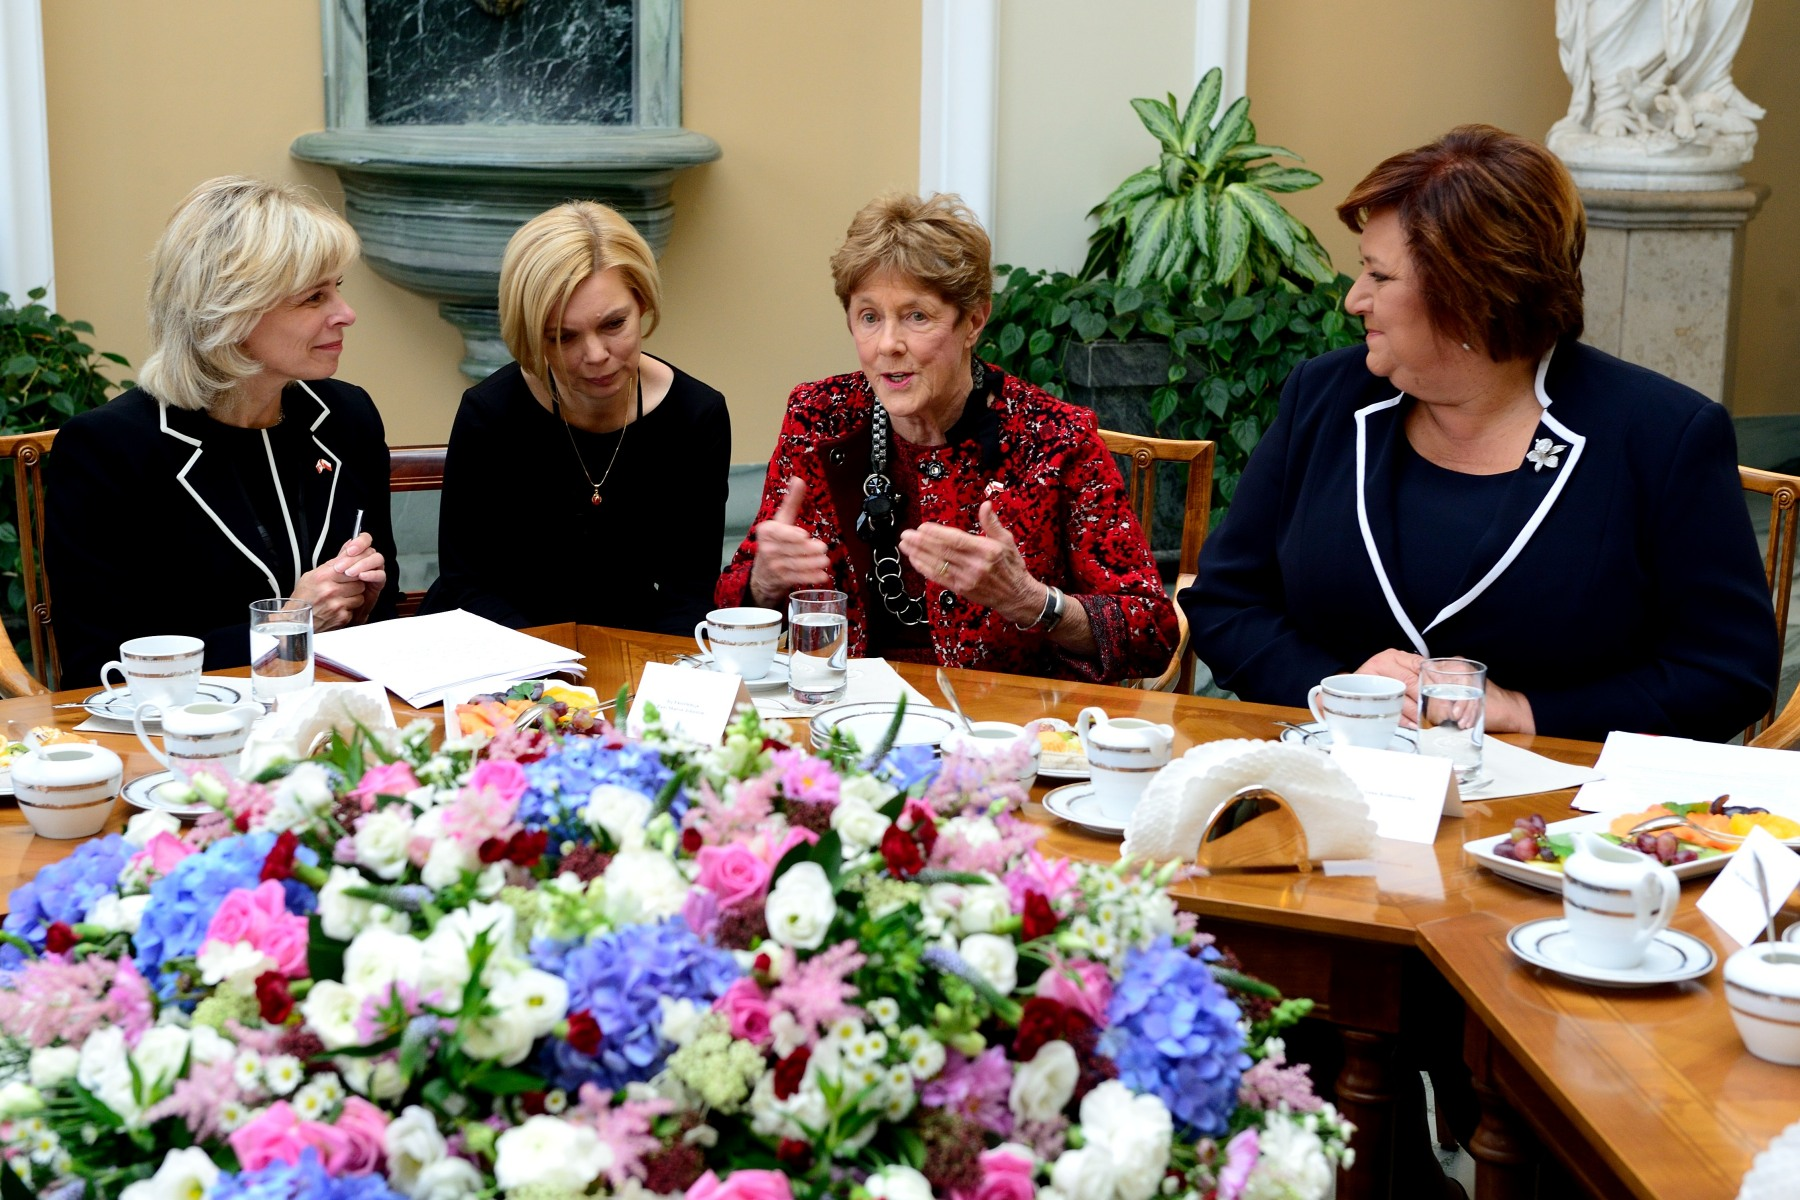 Meanwhile, Her Excellency Sharon Johnston and First Lady Anna Komorowska engaged in a discussion with representatives of Polish NGOs to discuss important social issues affecting Poland today.